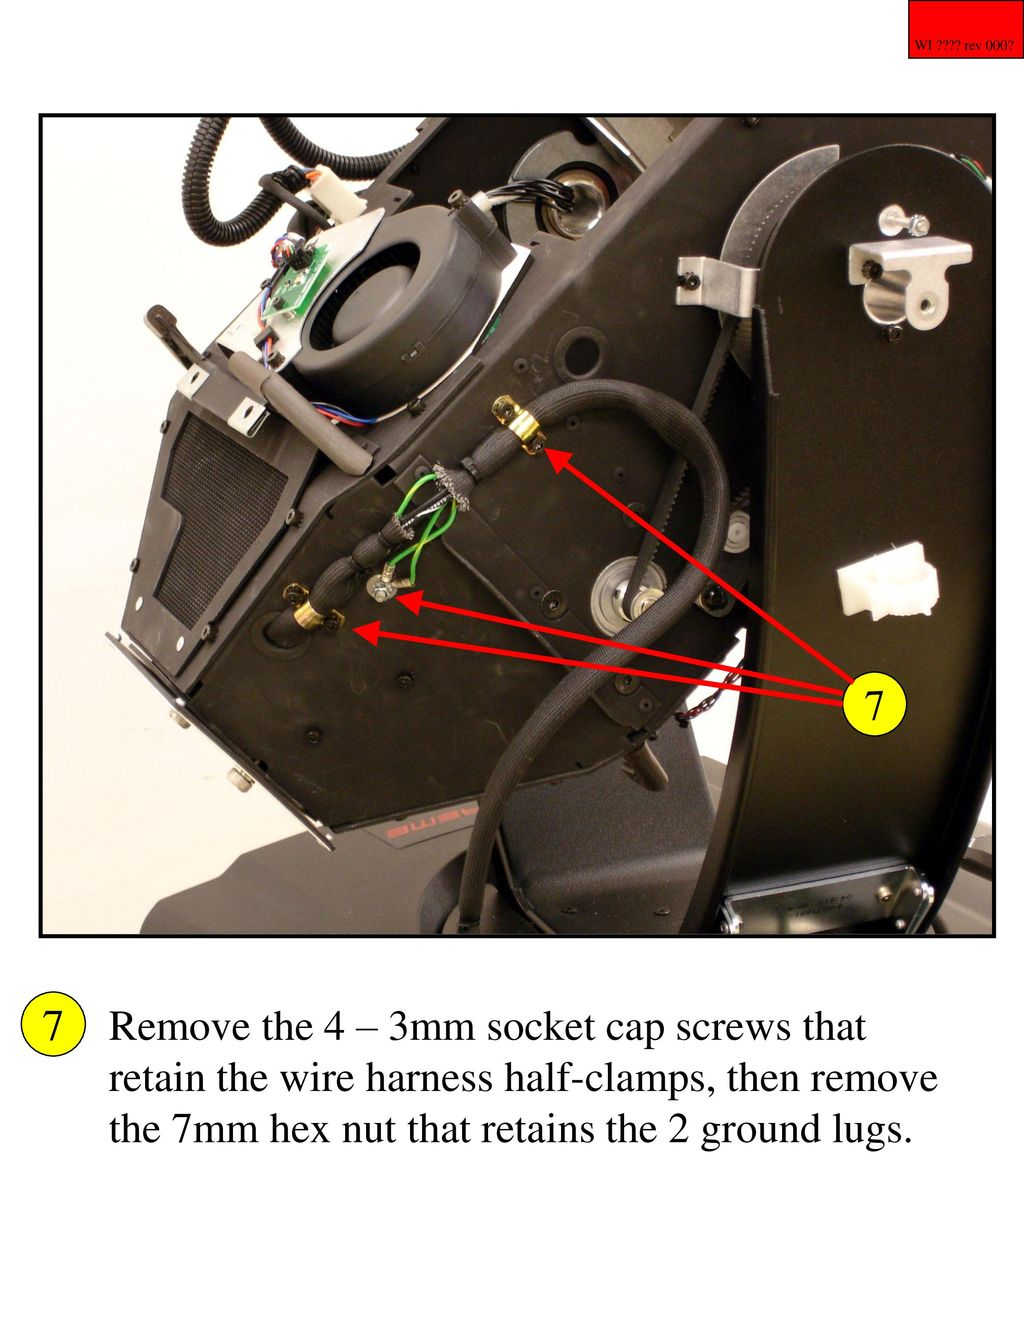 X Spot Lamp Socket Replacement Procedure Ppt Download Removing Wires From Harness 5 7 Remove